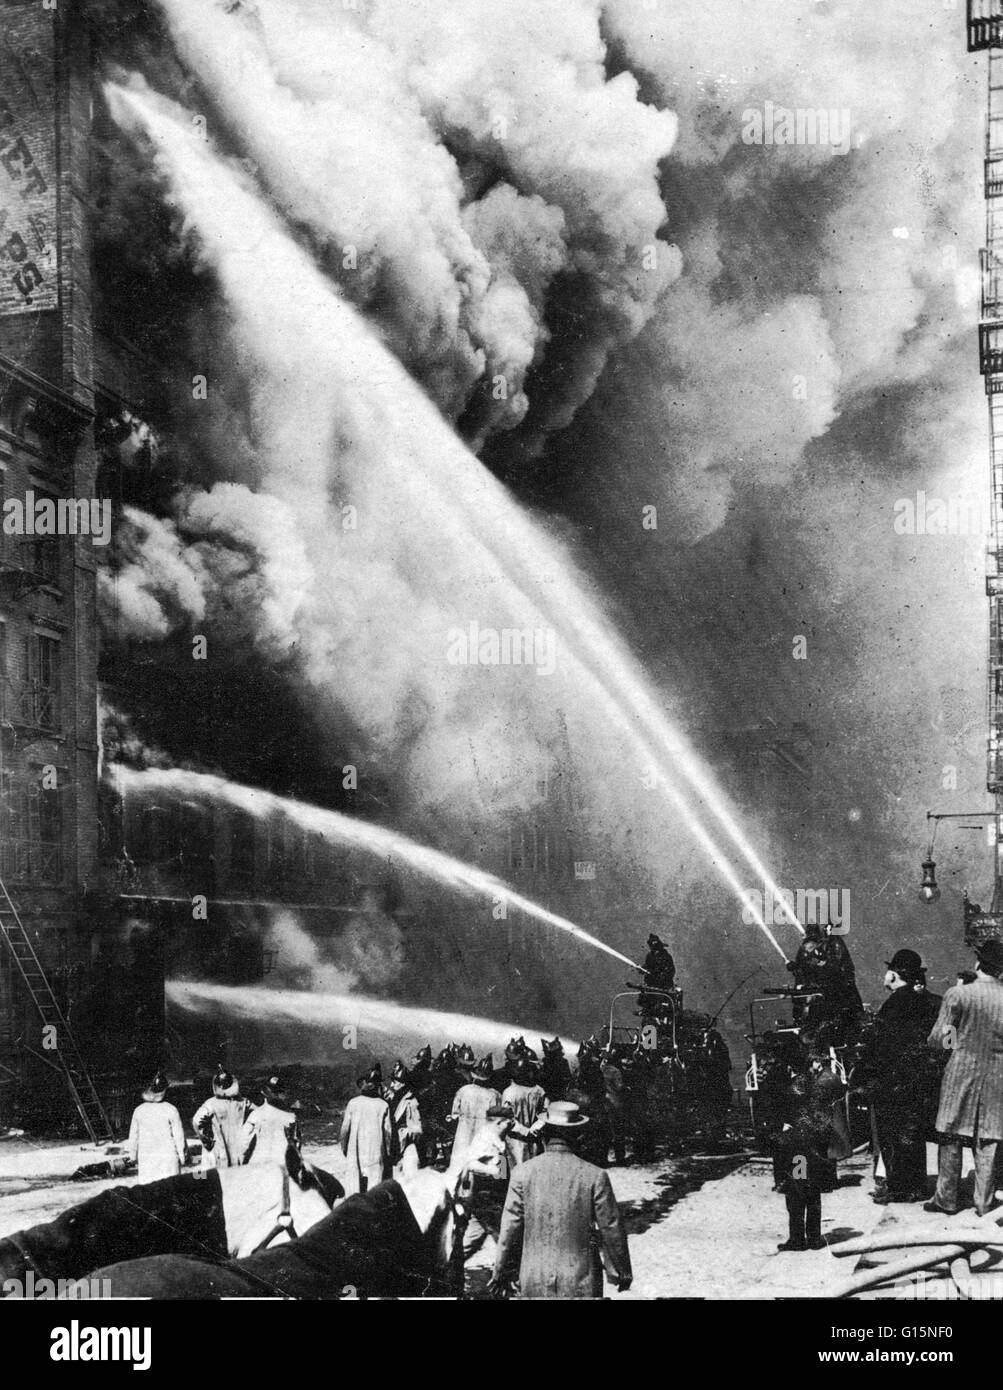 The Triangle Shirtwaist Factory fire in New York City on ... Triangle Shirtwaist Fire Nyu